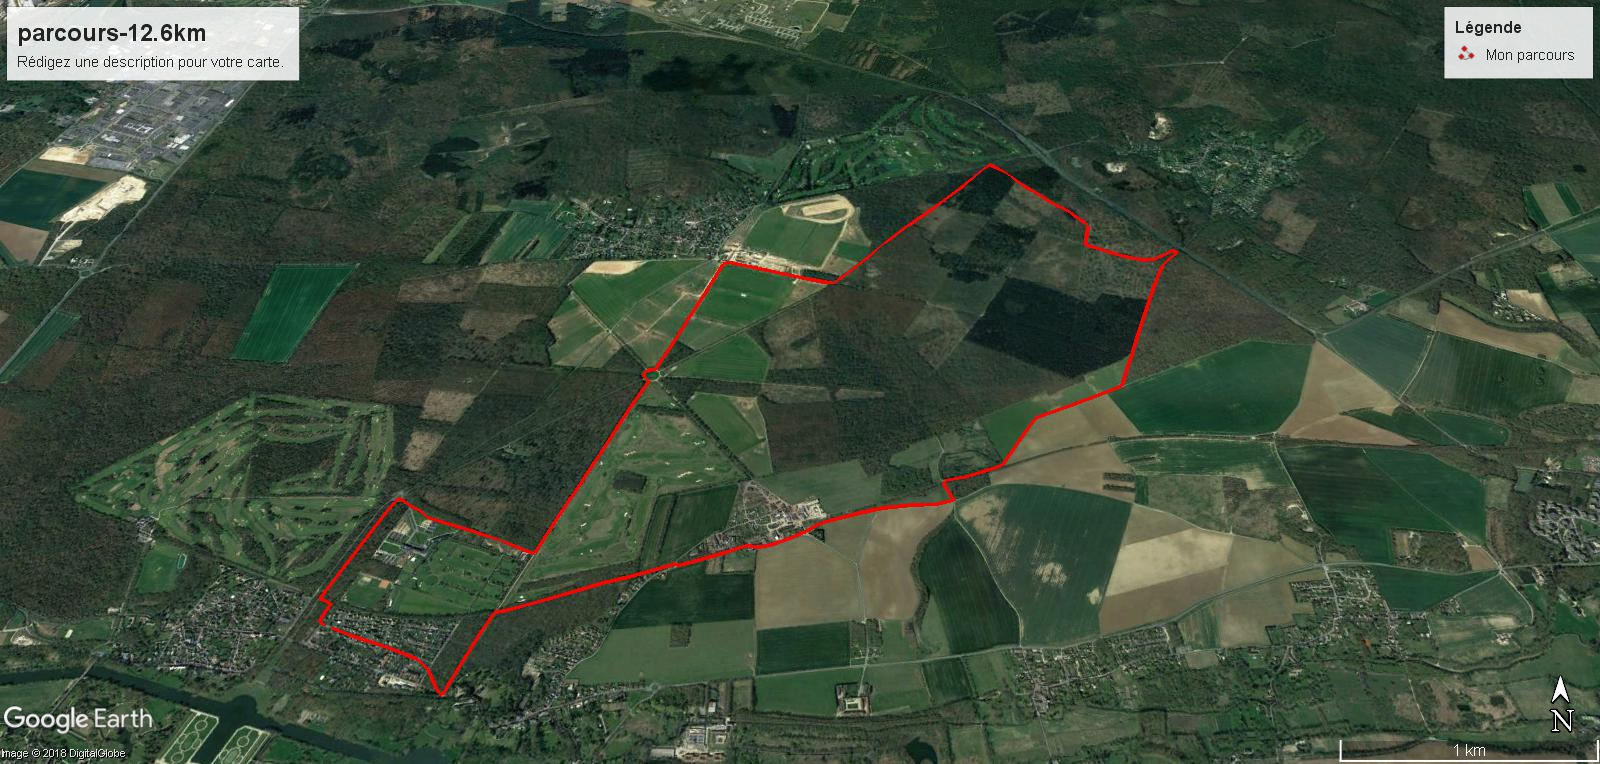 parcours-12.6km-foret-vineuil